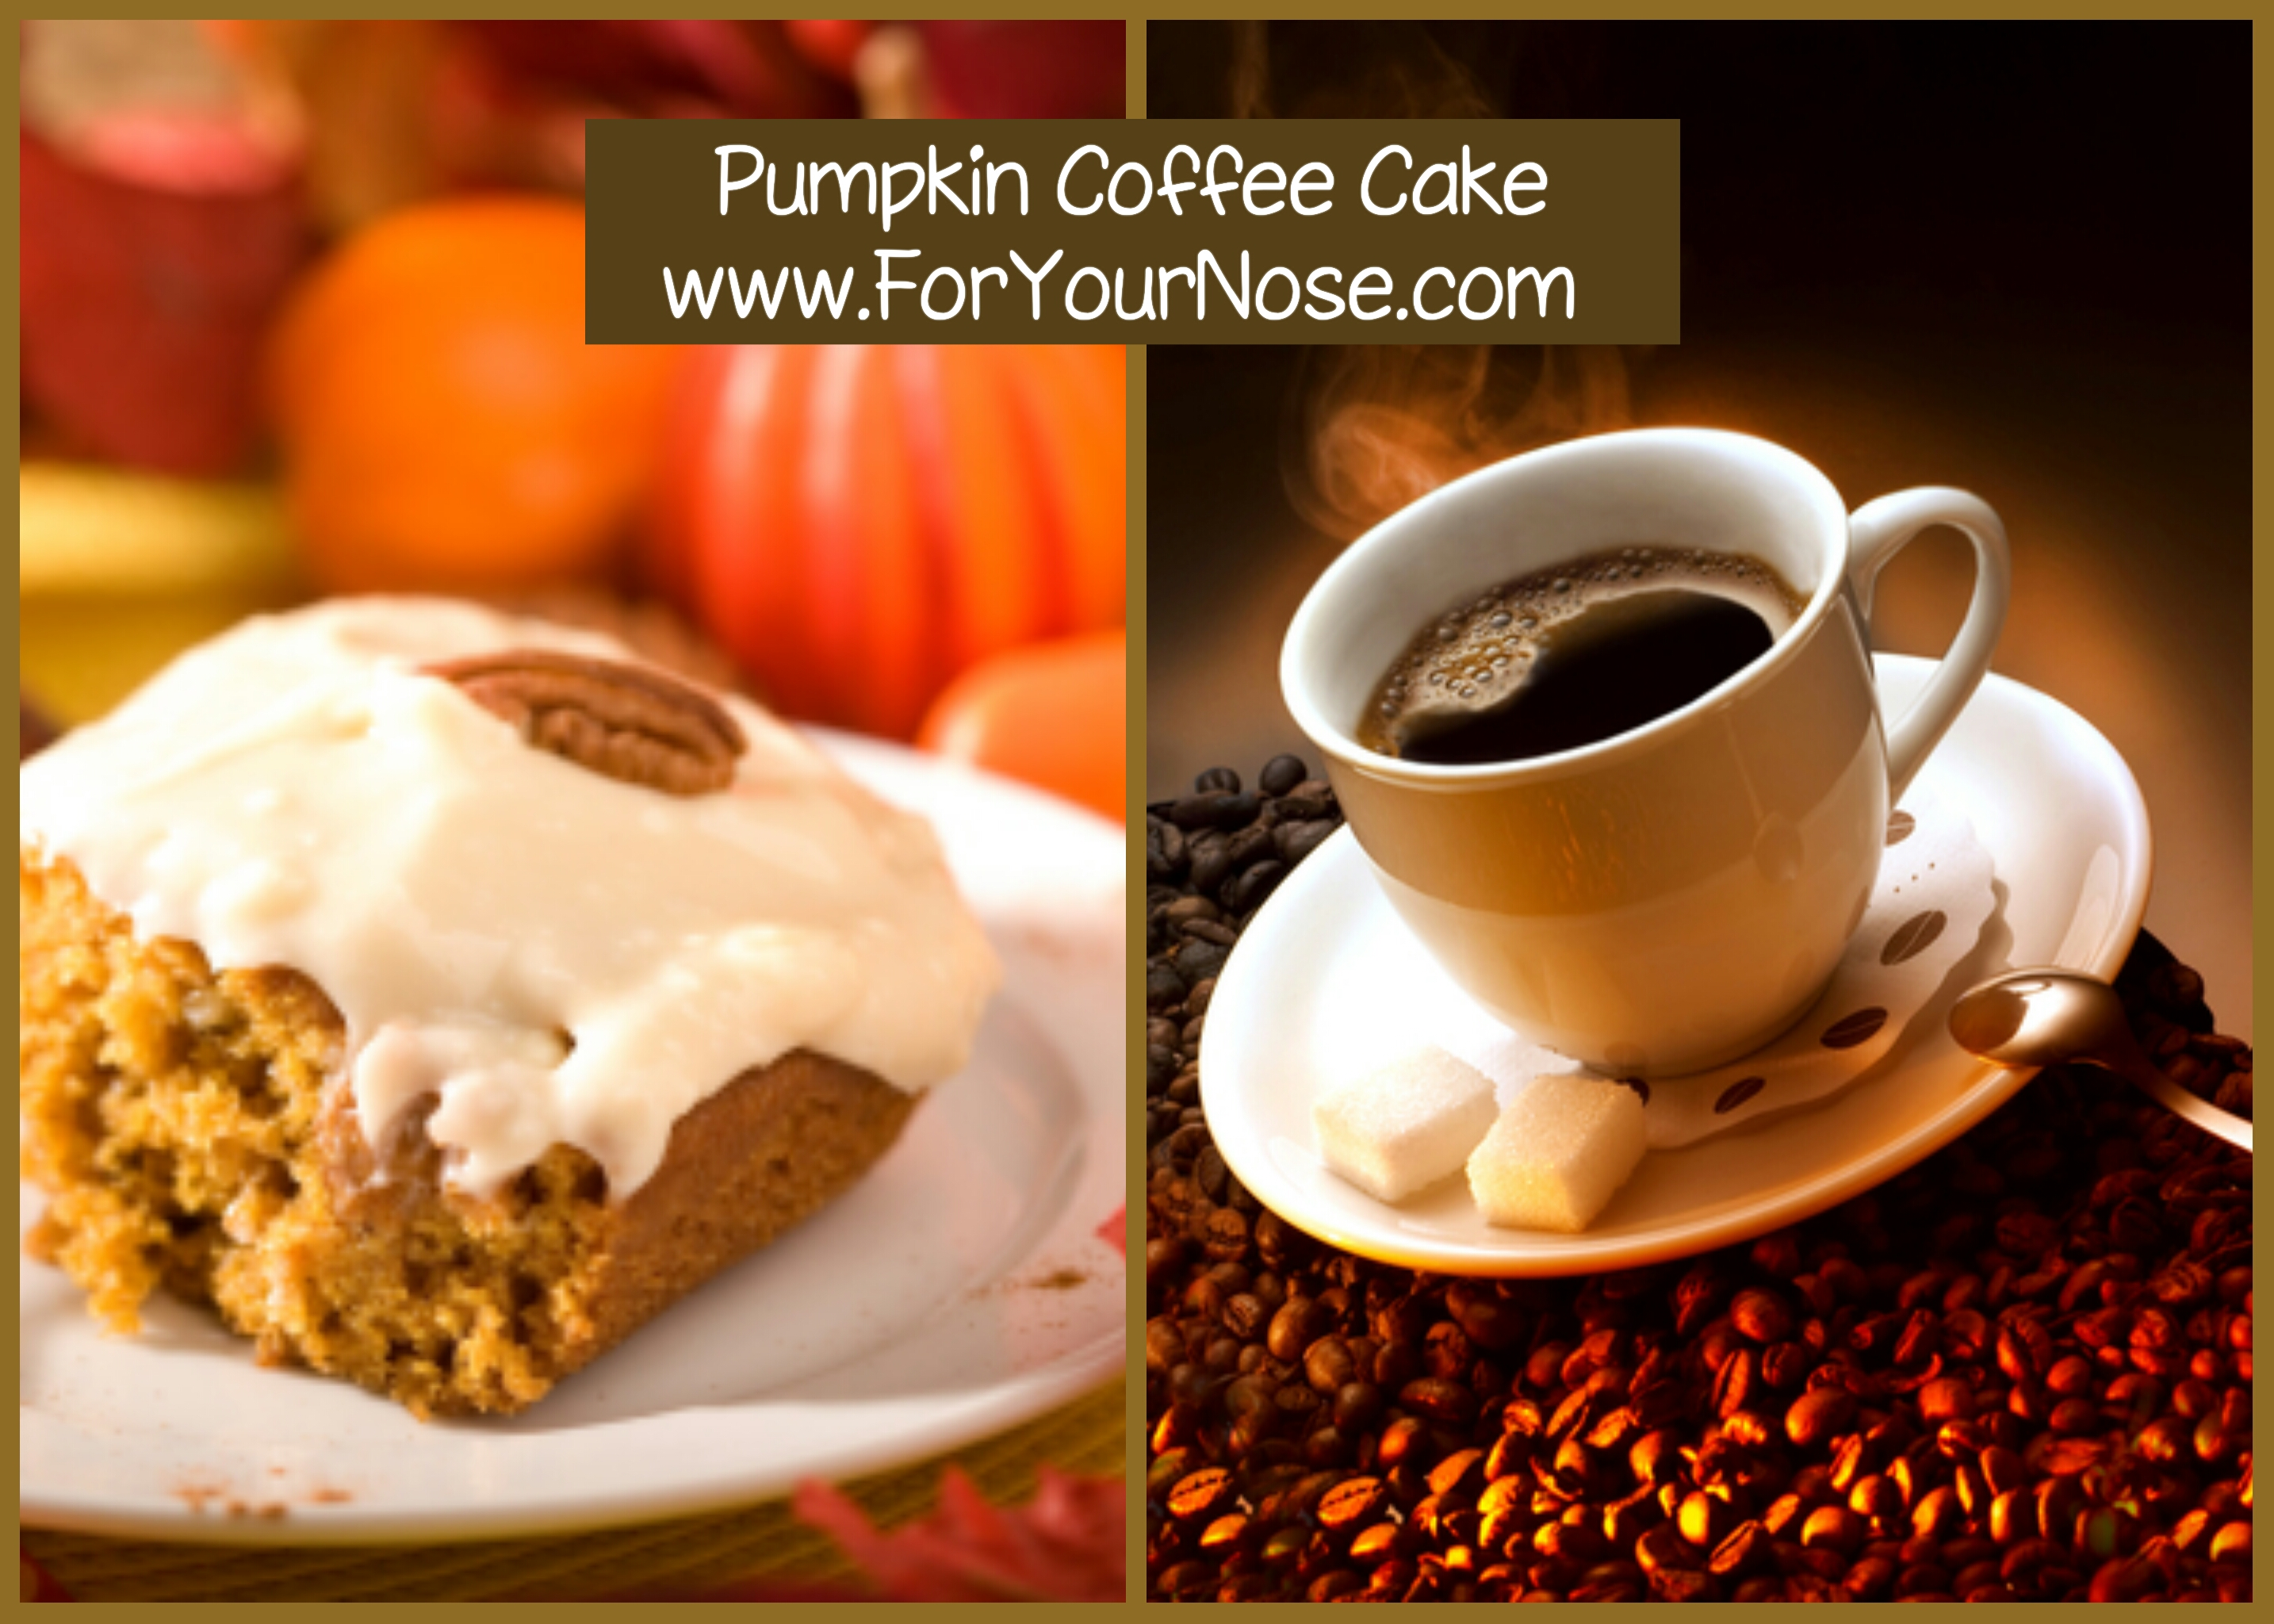 pumpkin coffee cake fragrance